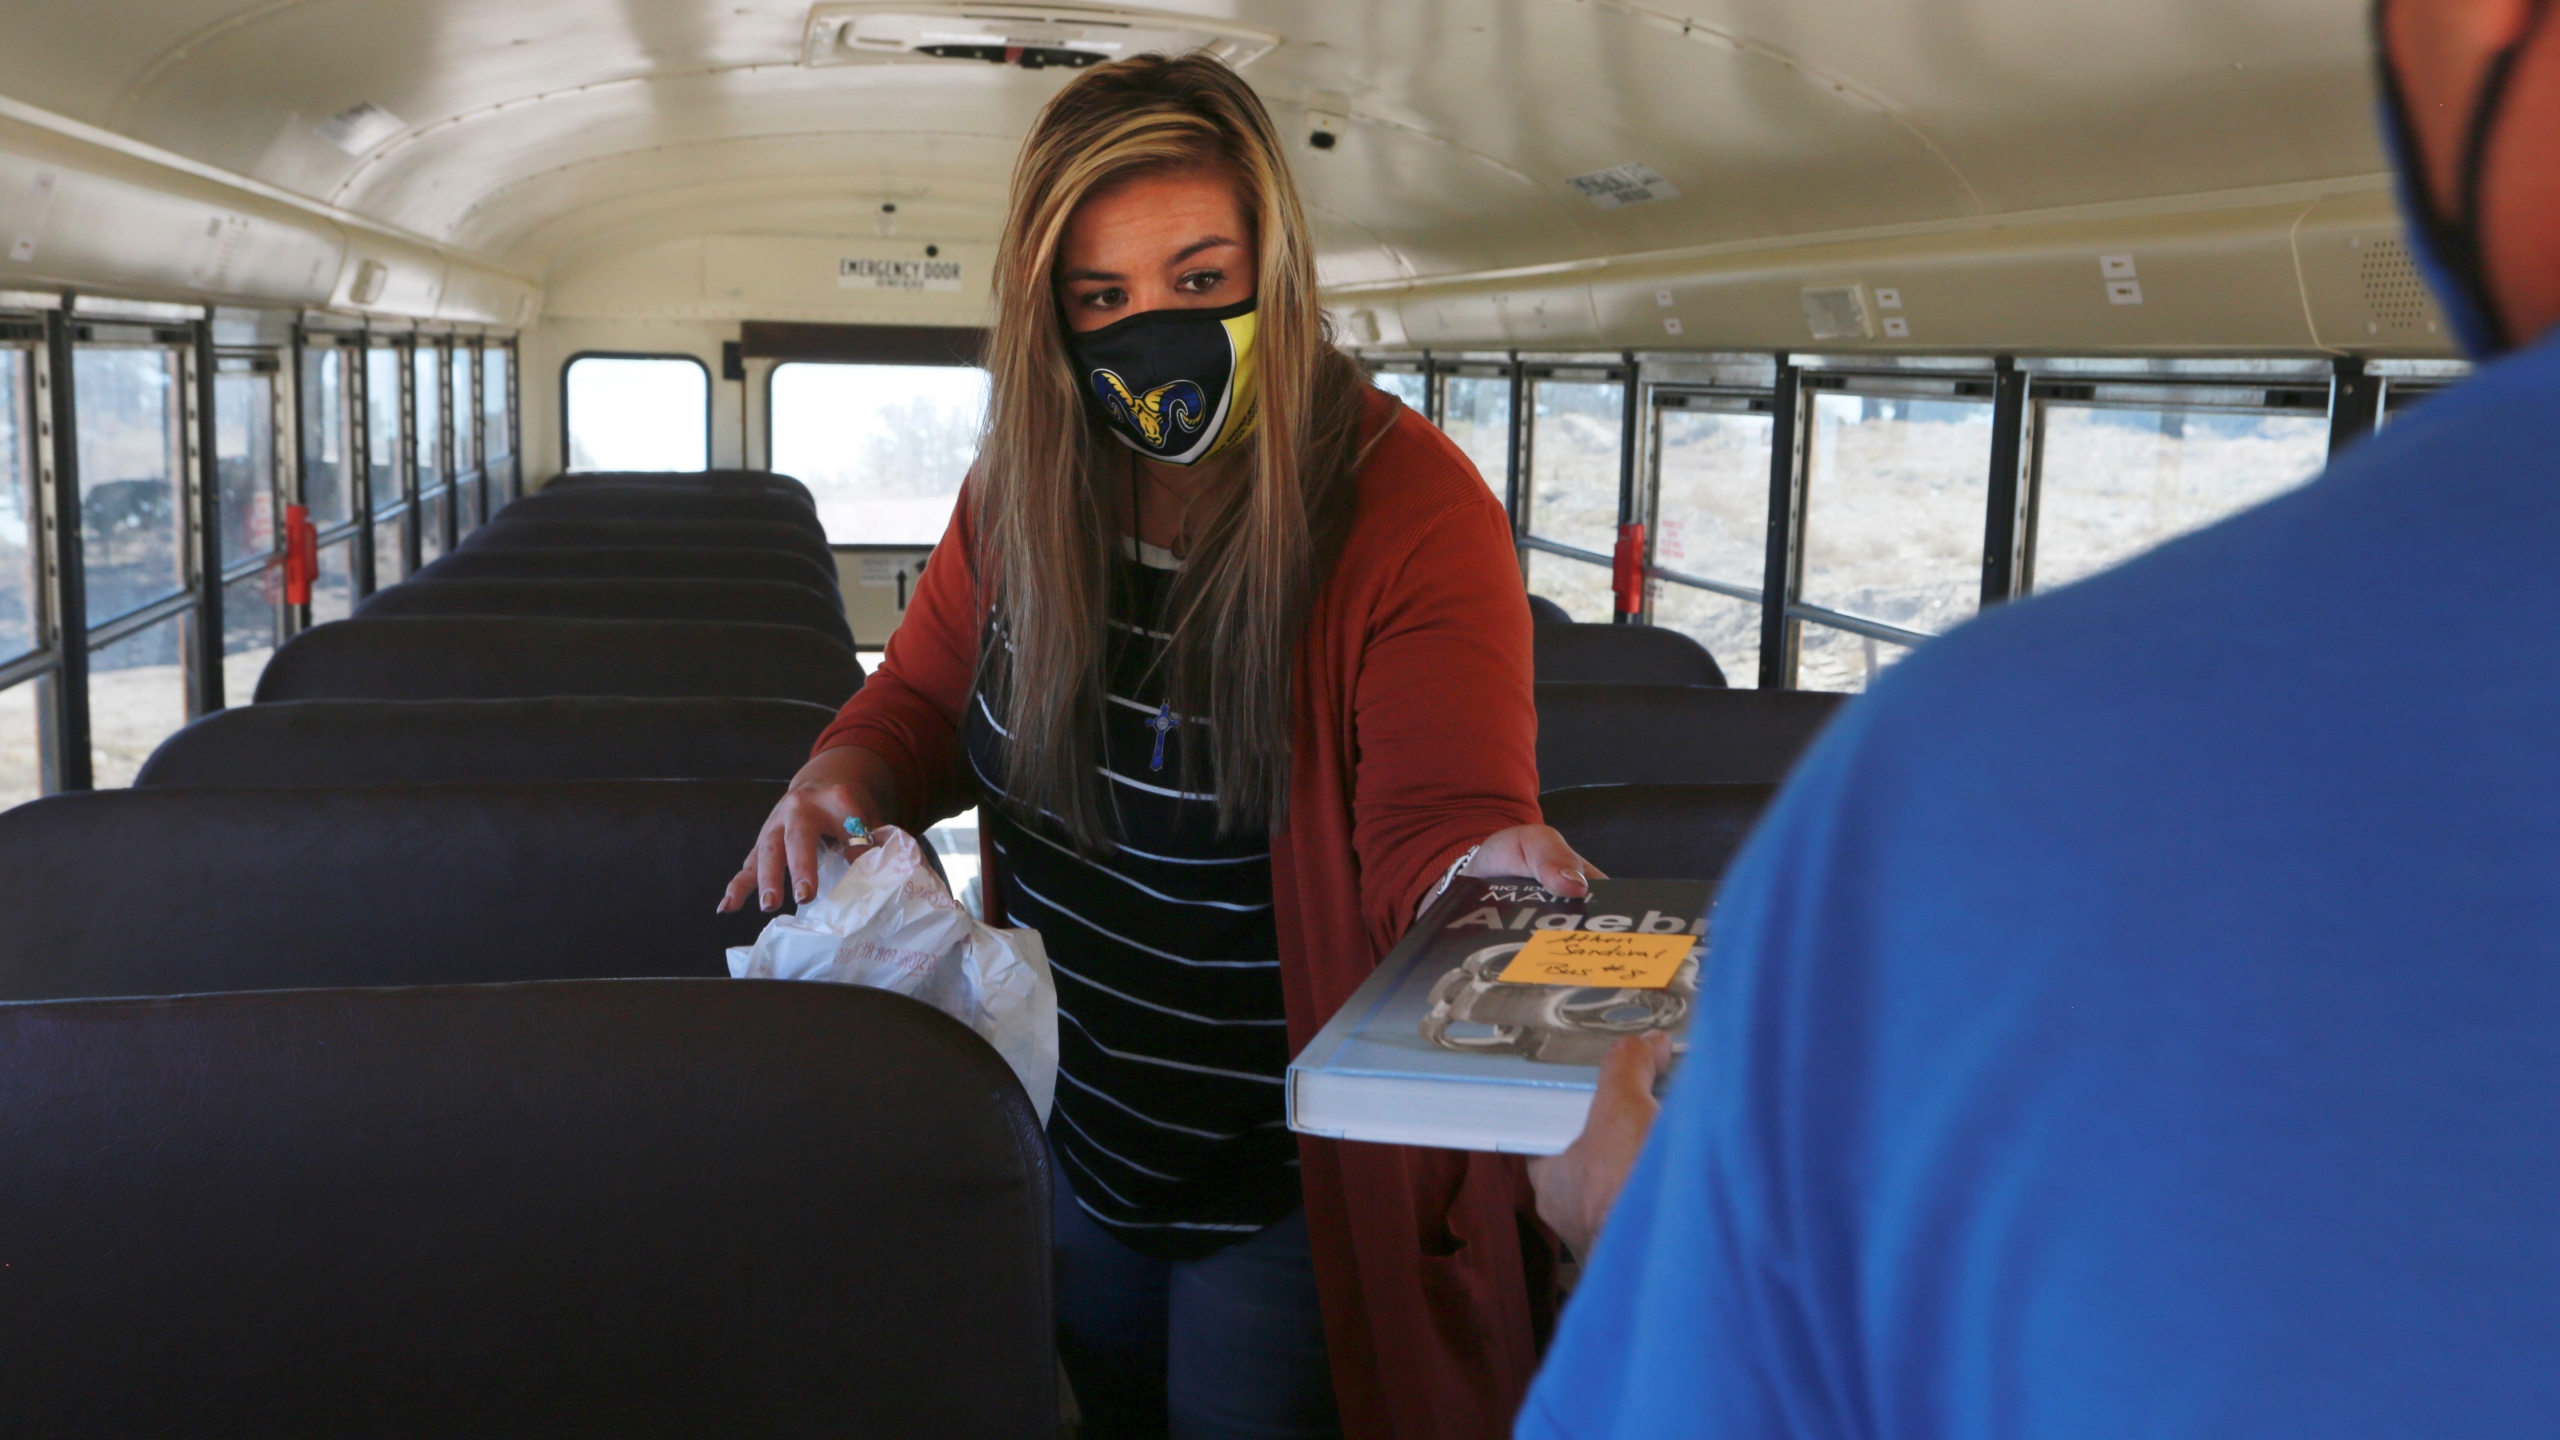 Social worker Victoria Dominguez hands school bus driver Kelly Maestas a school math book for a student at a stop outside Cuba, N.M., Oct. 19, 2020. (Cedar Attanasio/AP Photo)